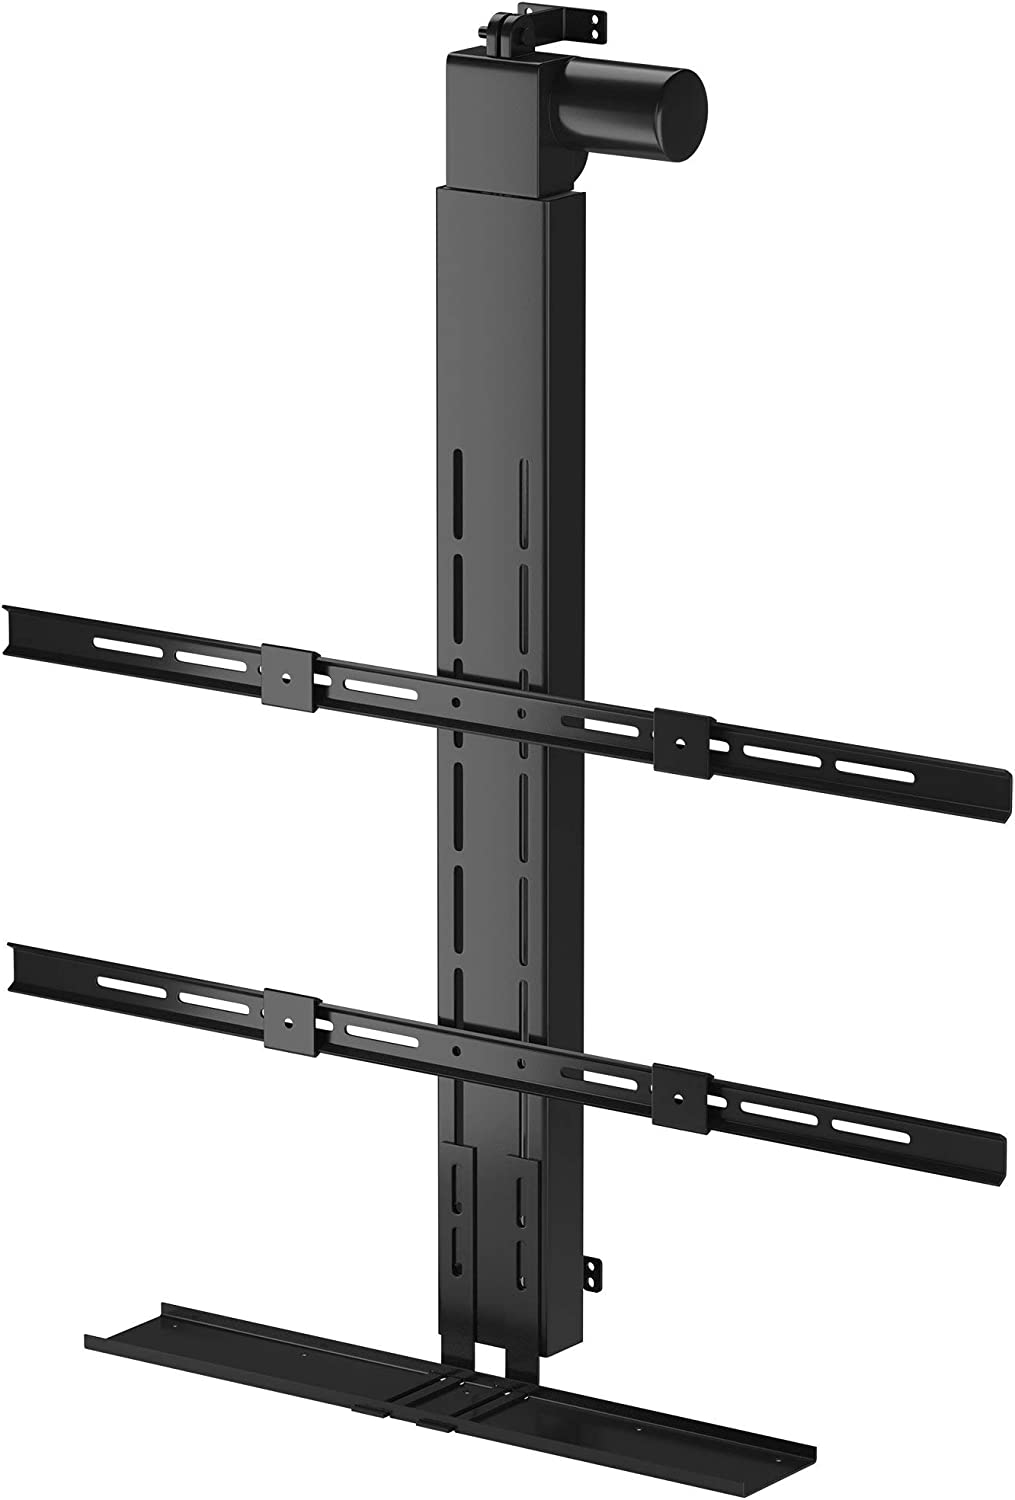 """Hidden Drop Down TV Mount, Motorized TV Ceiling Lift for Up to 75"""" Screens. Lift Stroke 40"""""""